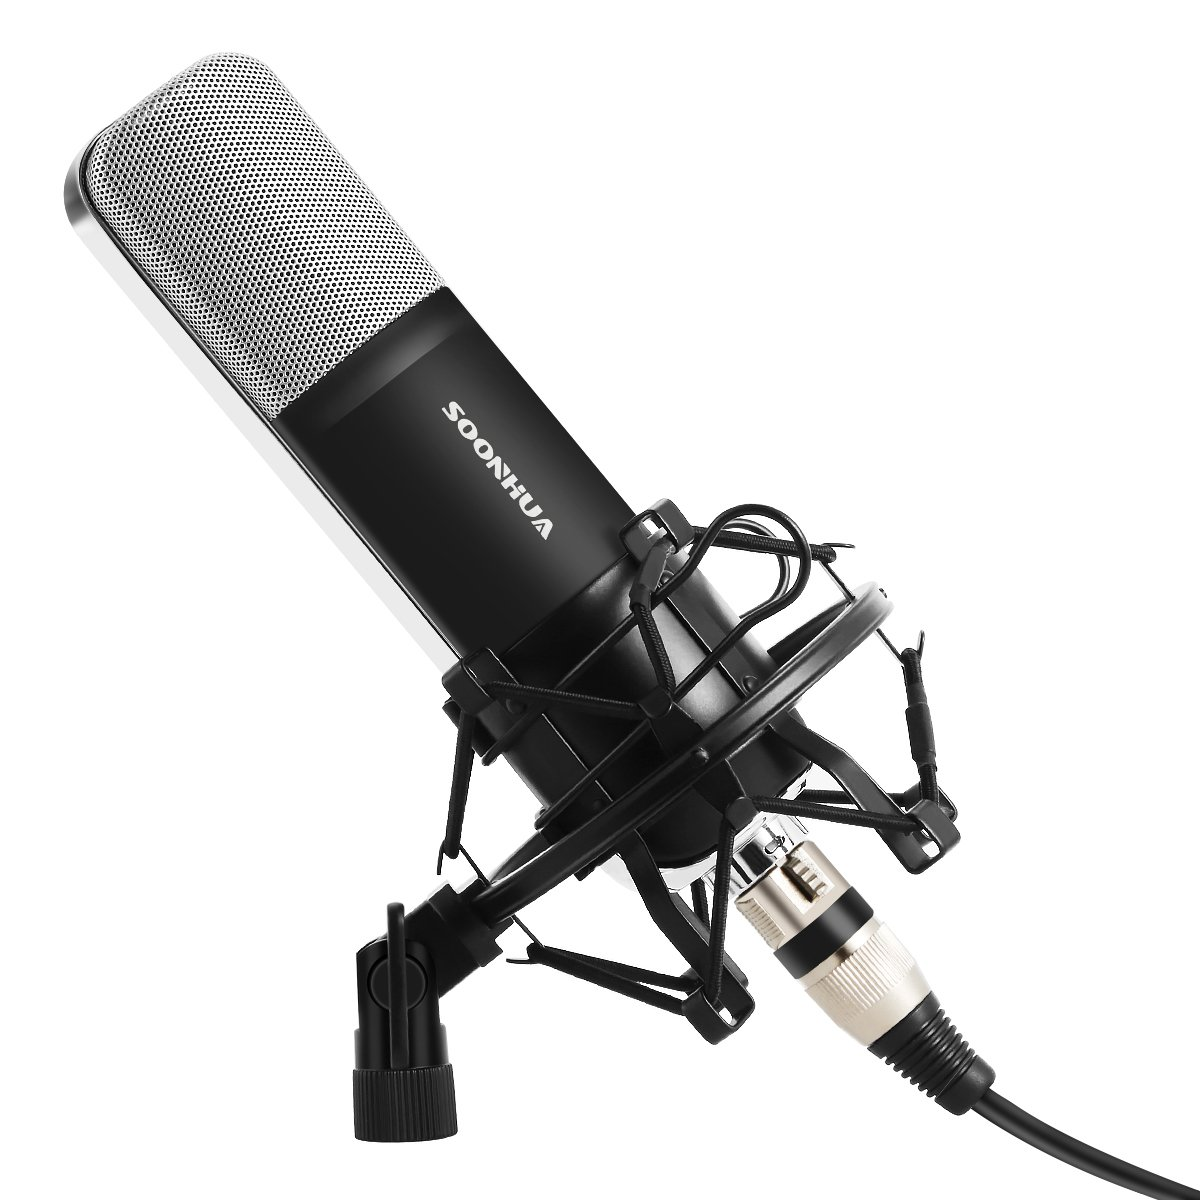 Professional Condenser Microphone, SOONHUA Music Studio MIC Podcast Recording Microphone Kit With Stand Shock Mount for PC Laptop Computer Broadcasting YouTube Vlogging Skype Chatting Gaming 4332800747